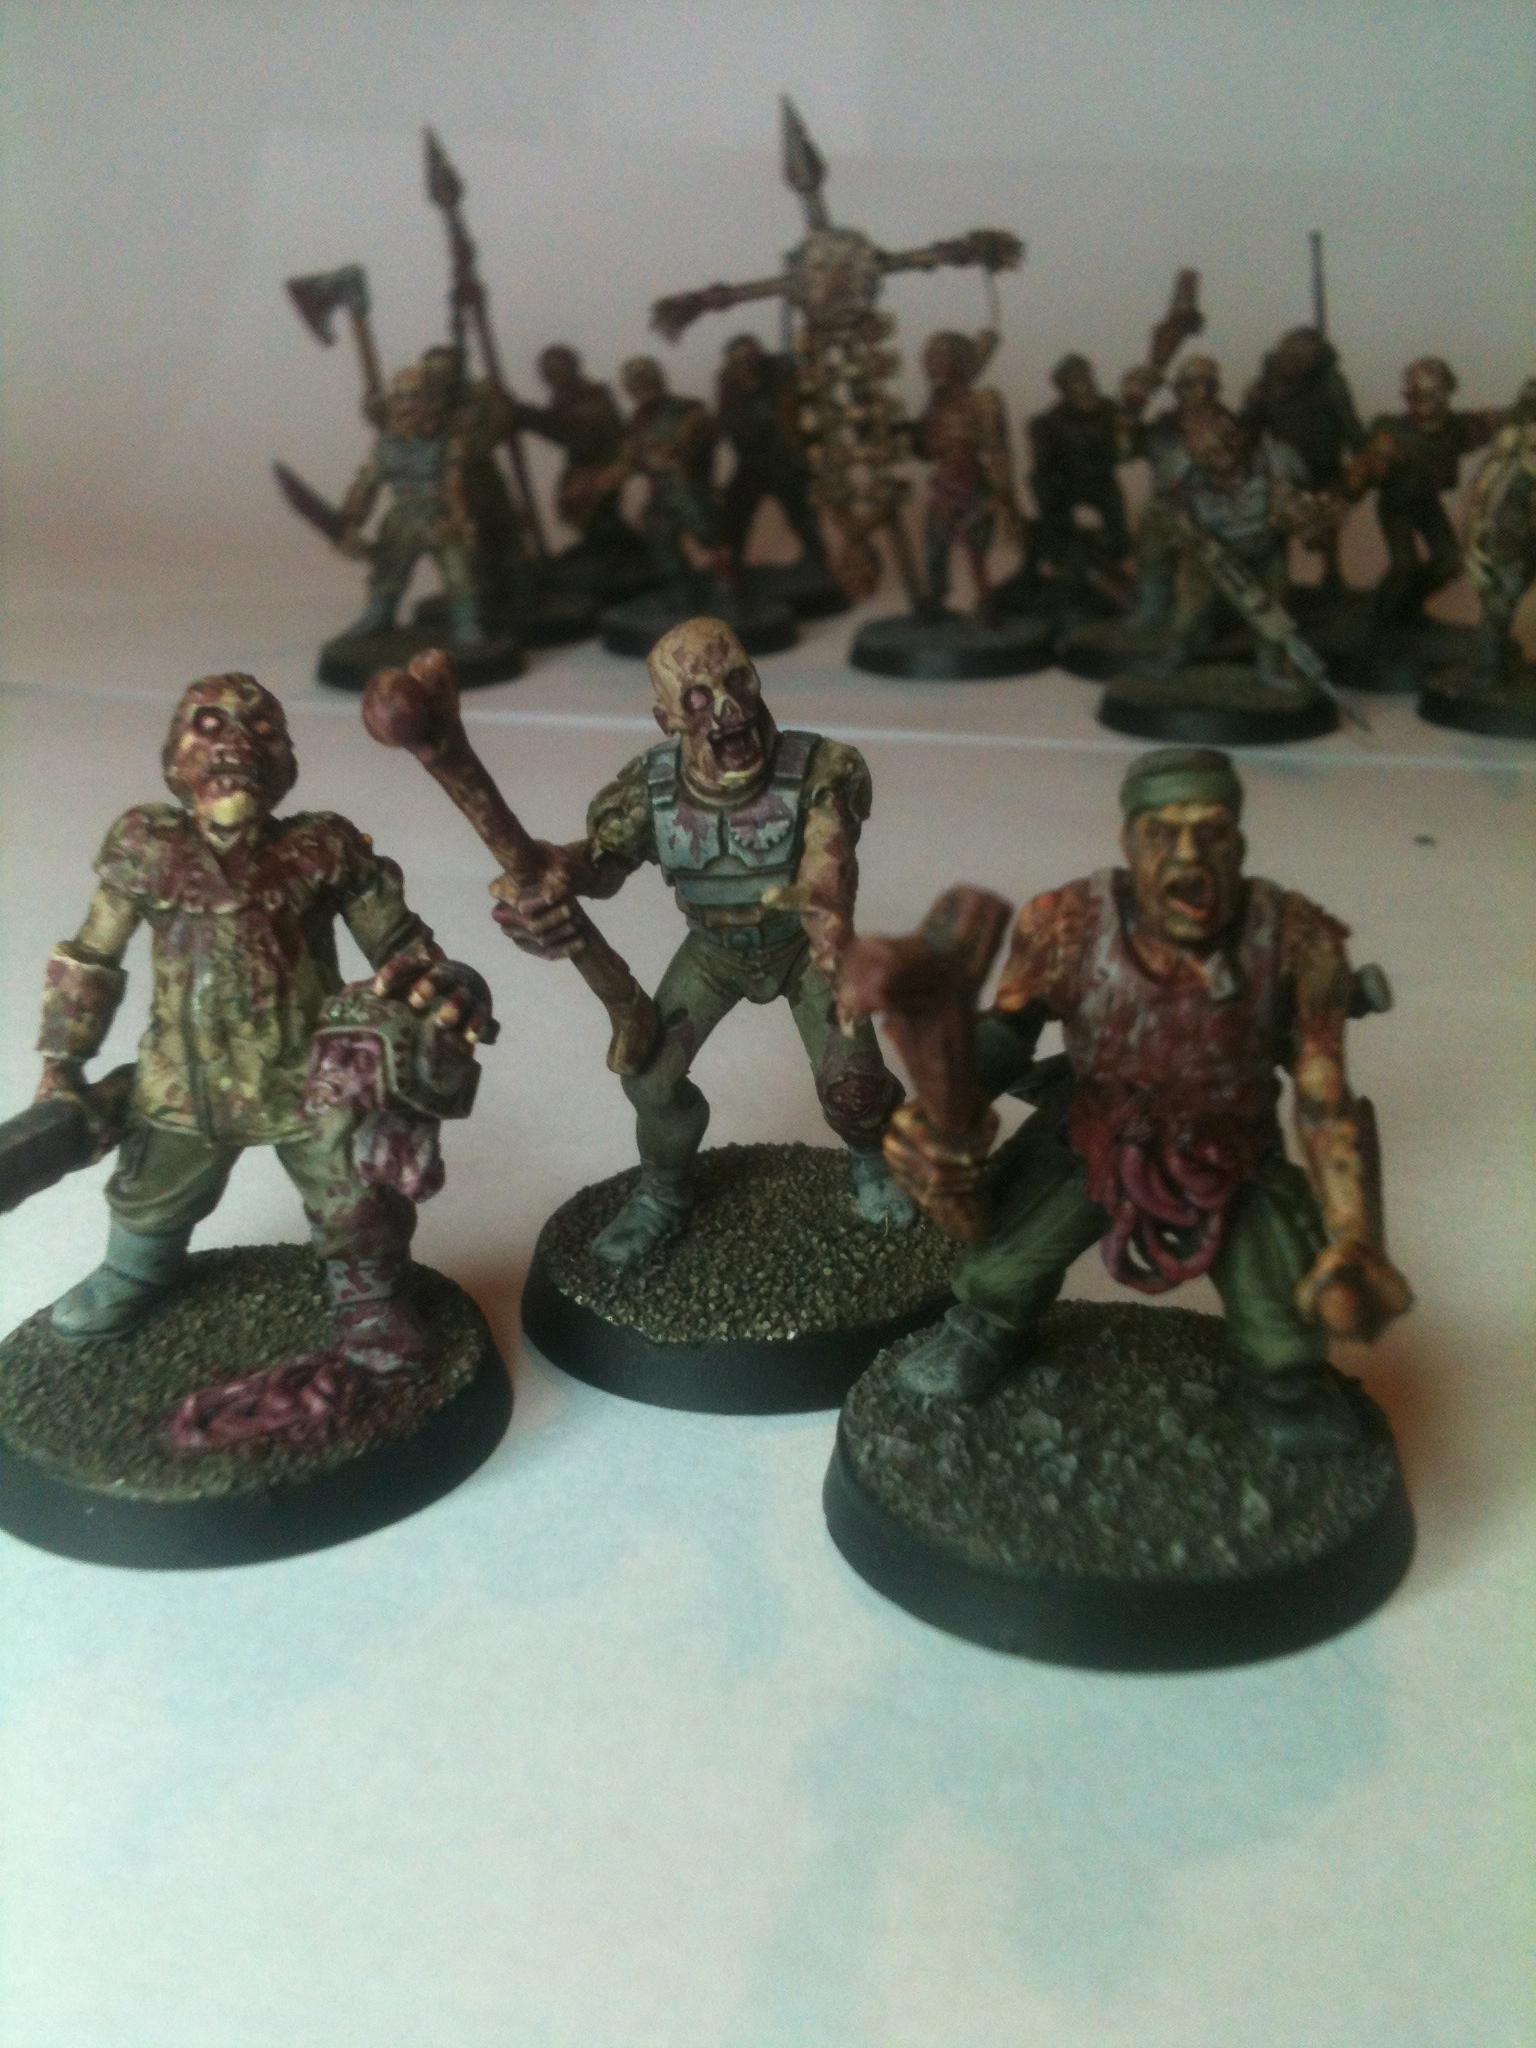 Chaos Cultists, Gore, Nurgle, Undead Guard, Warhammer 40,000